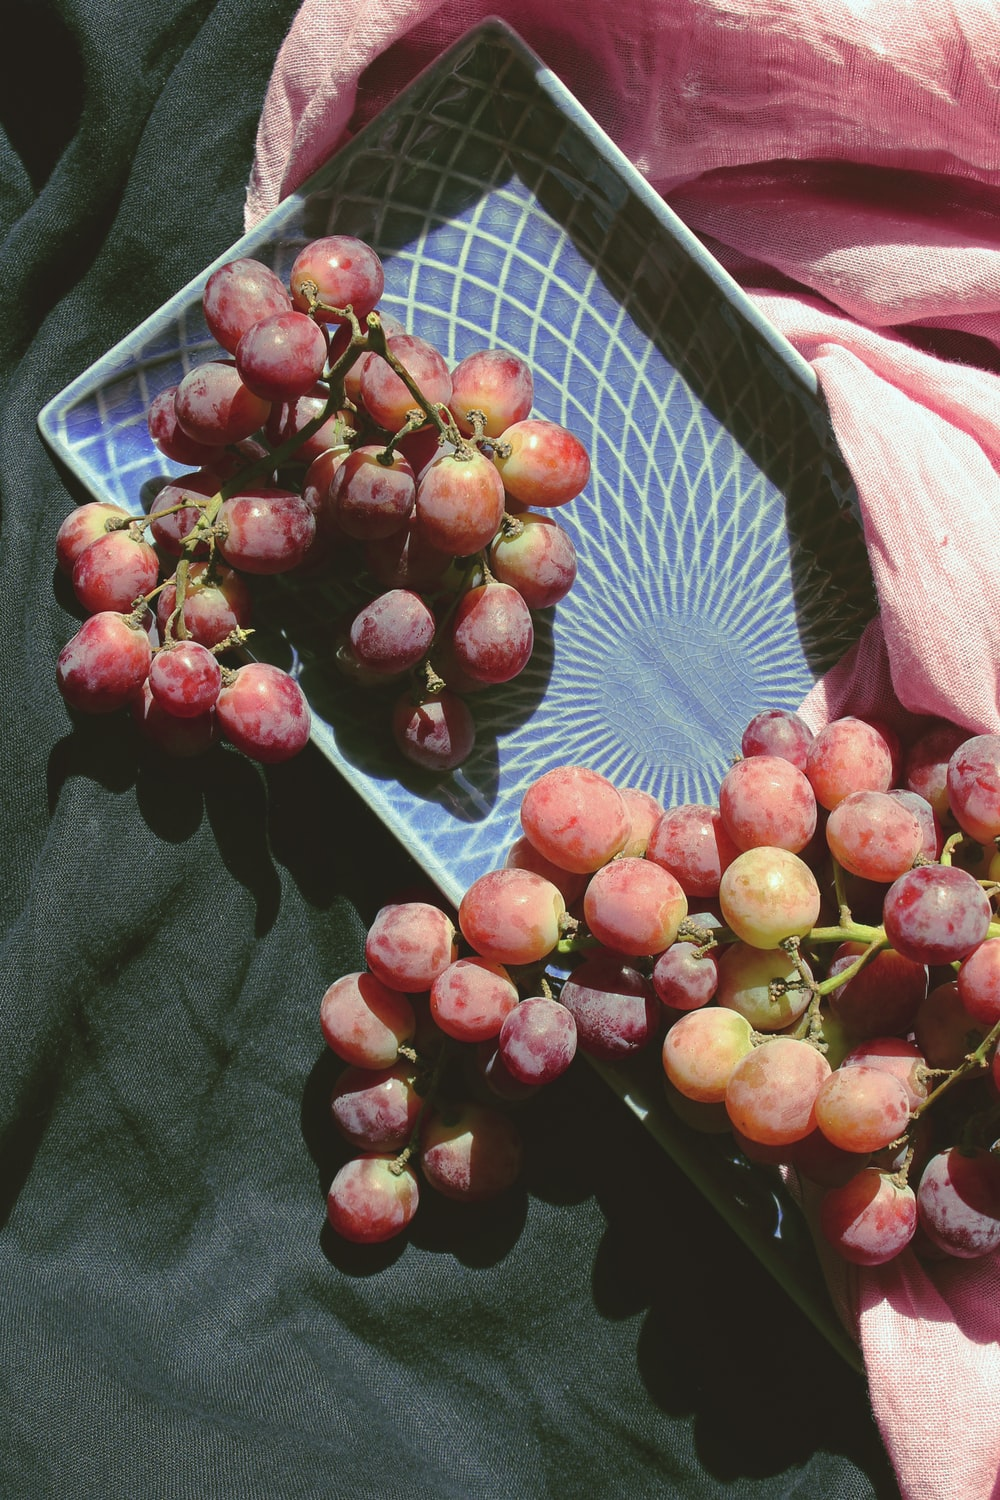 red grapes in plate on textile